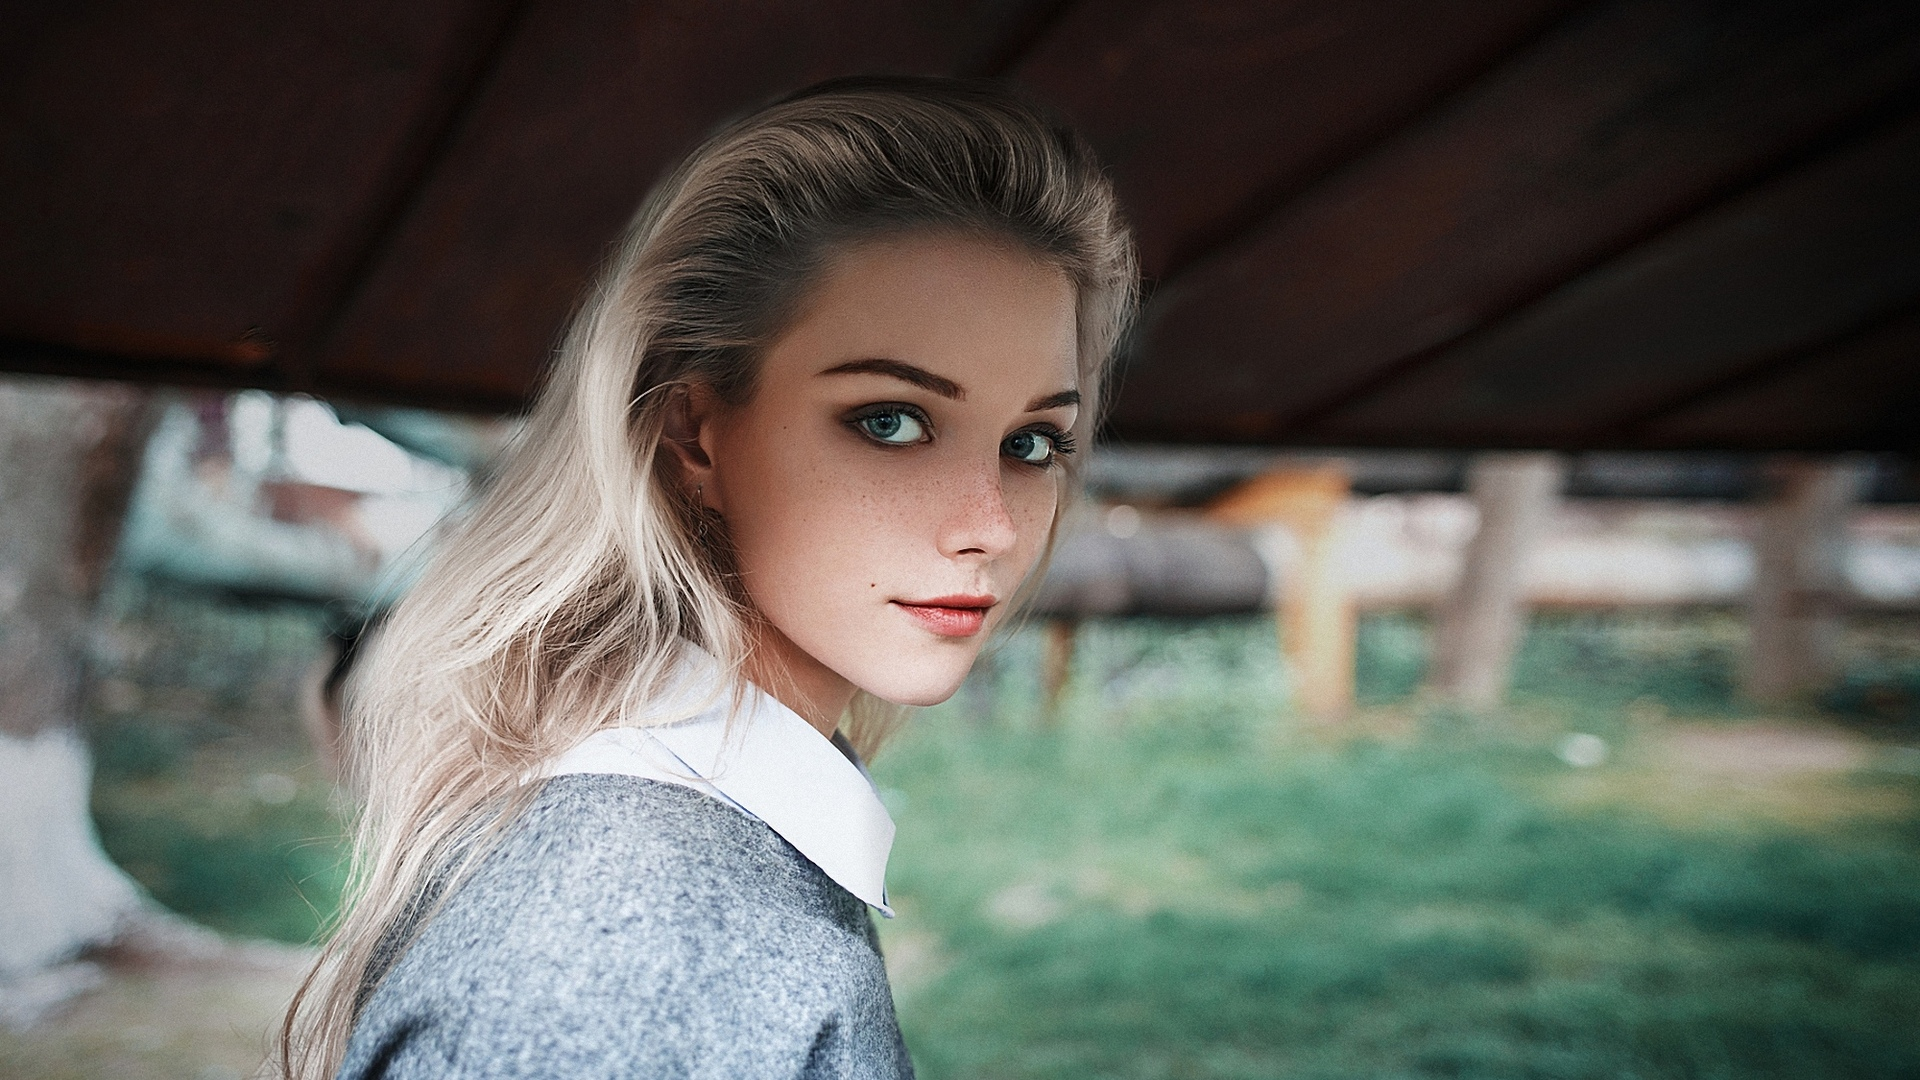 People 1920x1080 women model blonde dyed hair long hair straight hair looking at viewer natural light bokeh collar blue clothing blue eyes women outdoors earrings lipstick red lipstick freckles mascara makeup